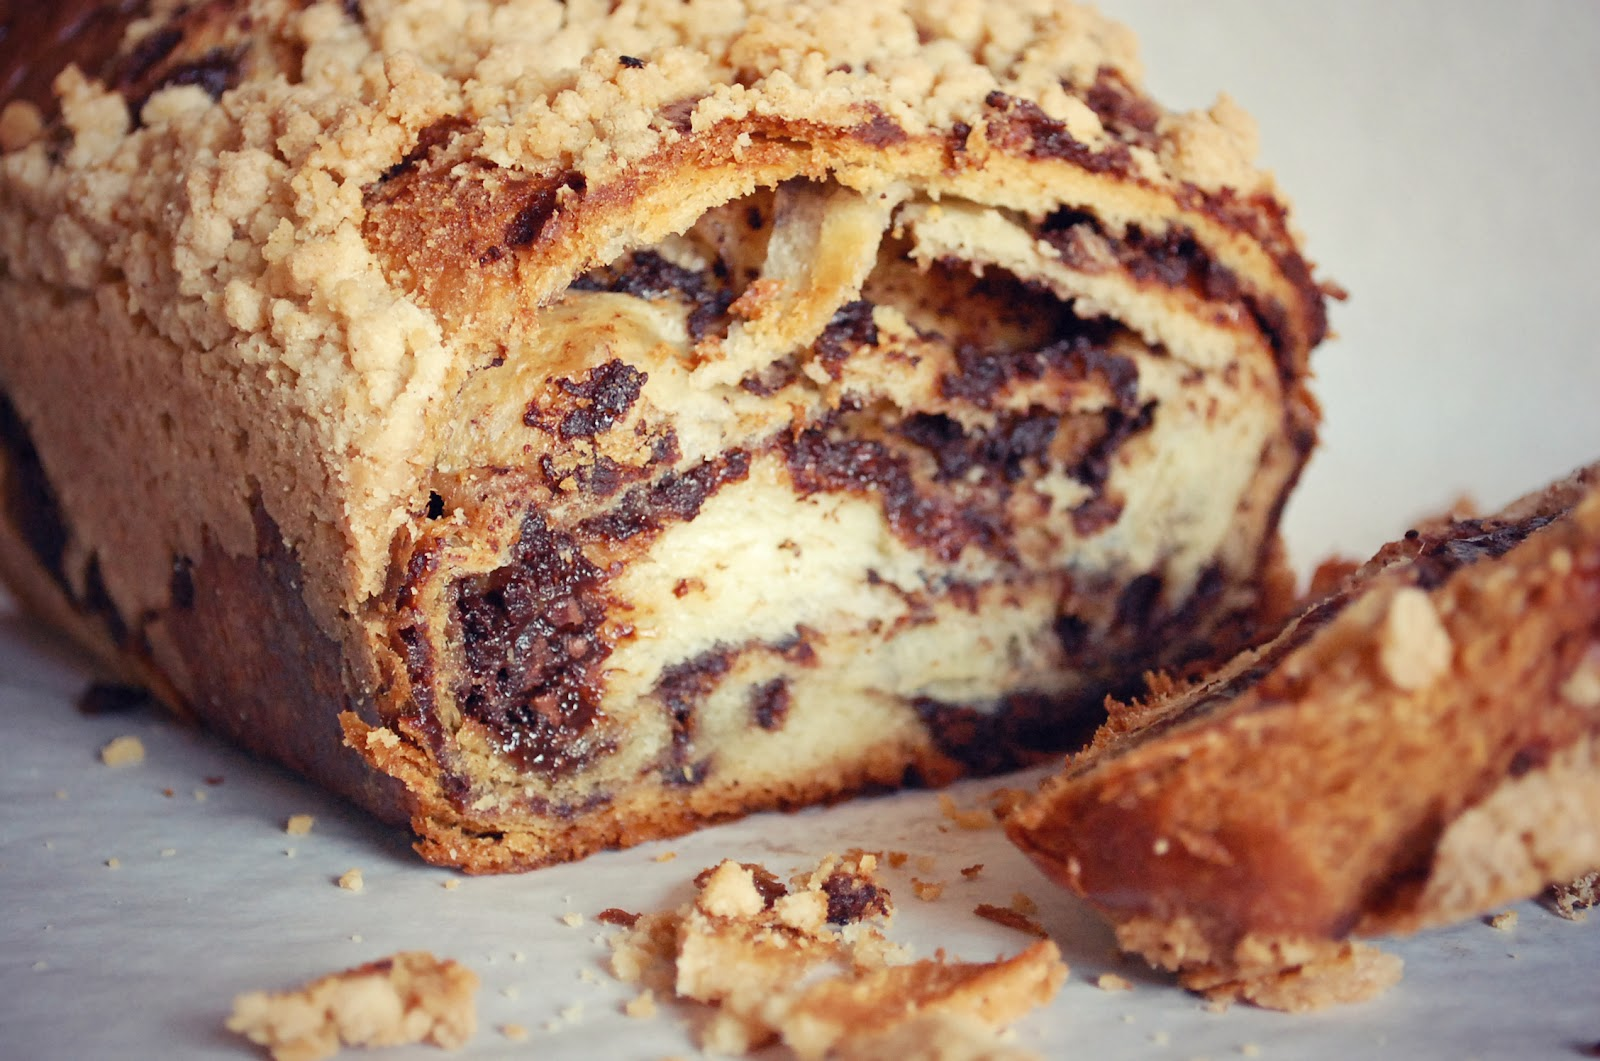 CHOCOLATE BABKA: THE CURE-ALL